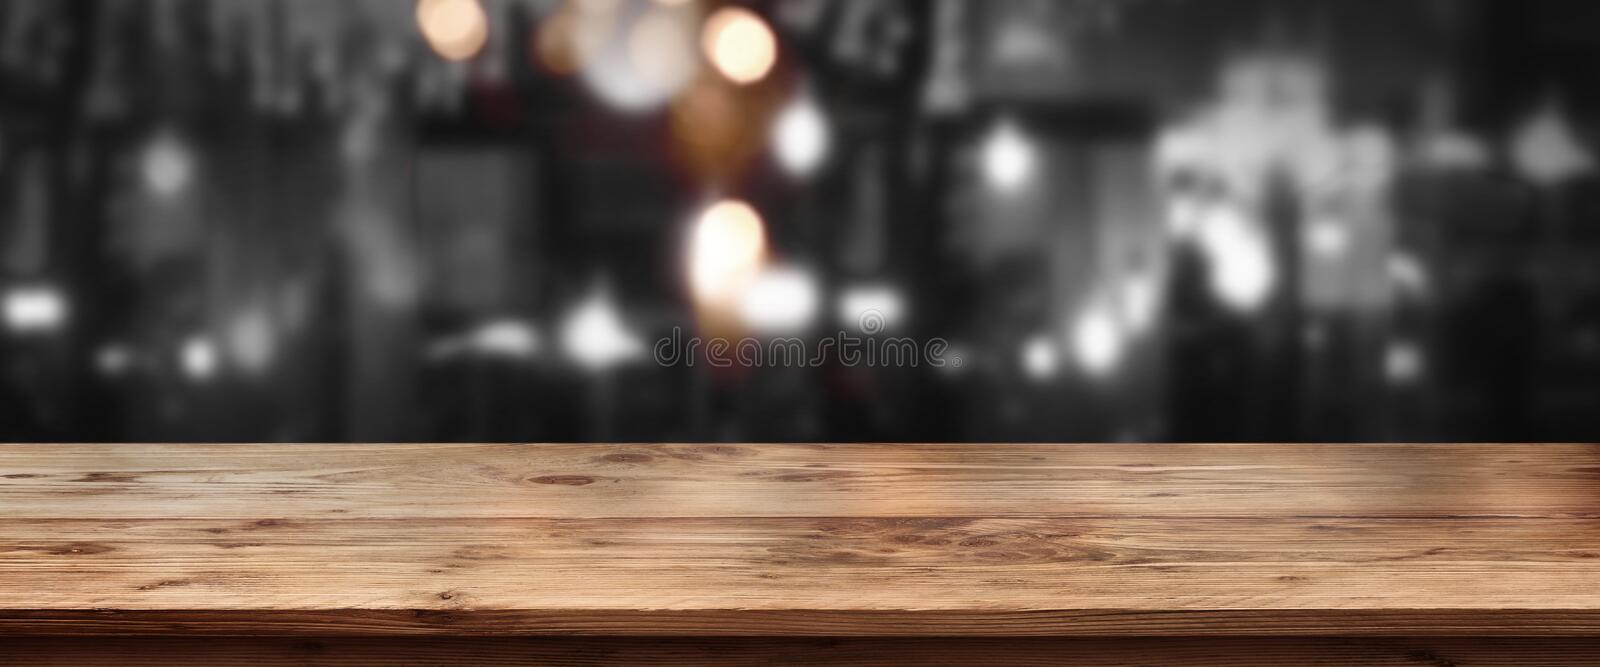 Night scenery at a bar. Scenery at night in a bar with bright lights in front of an empty wooden table stock image